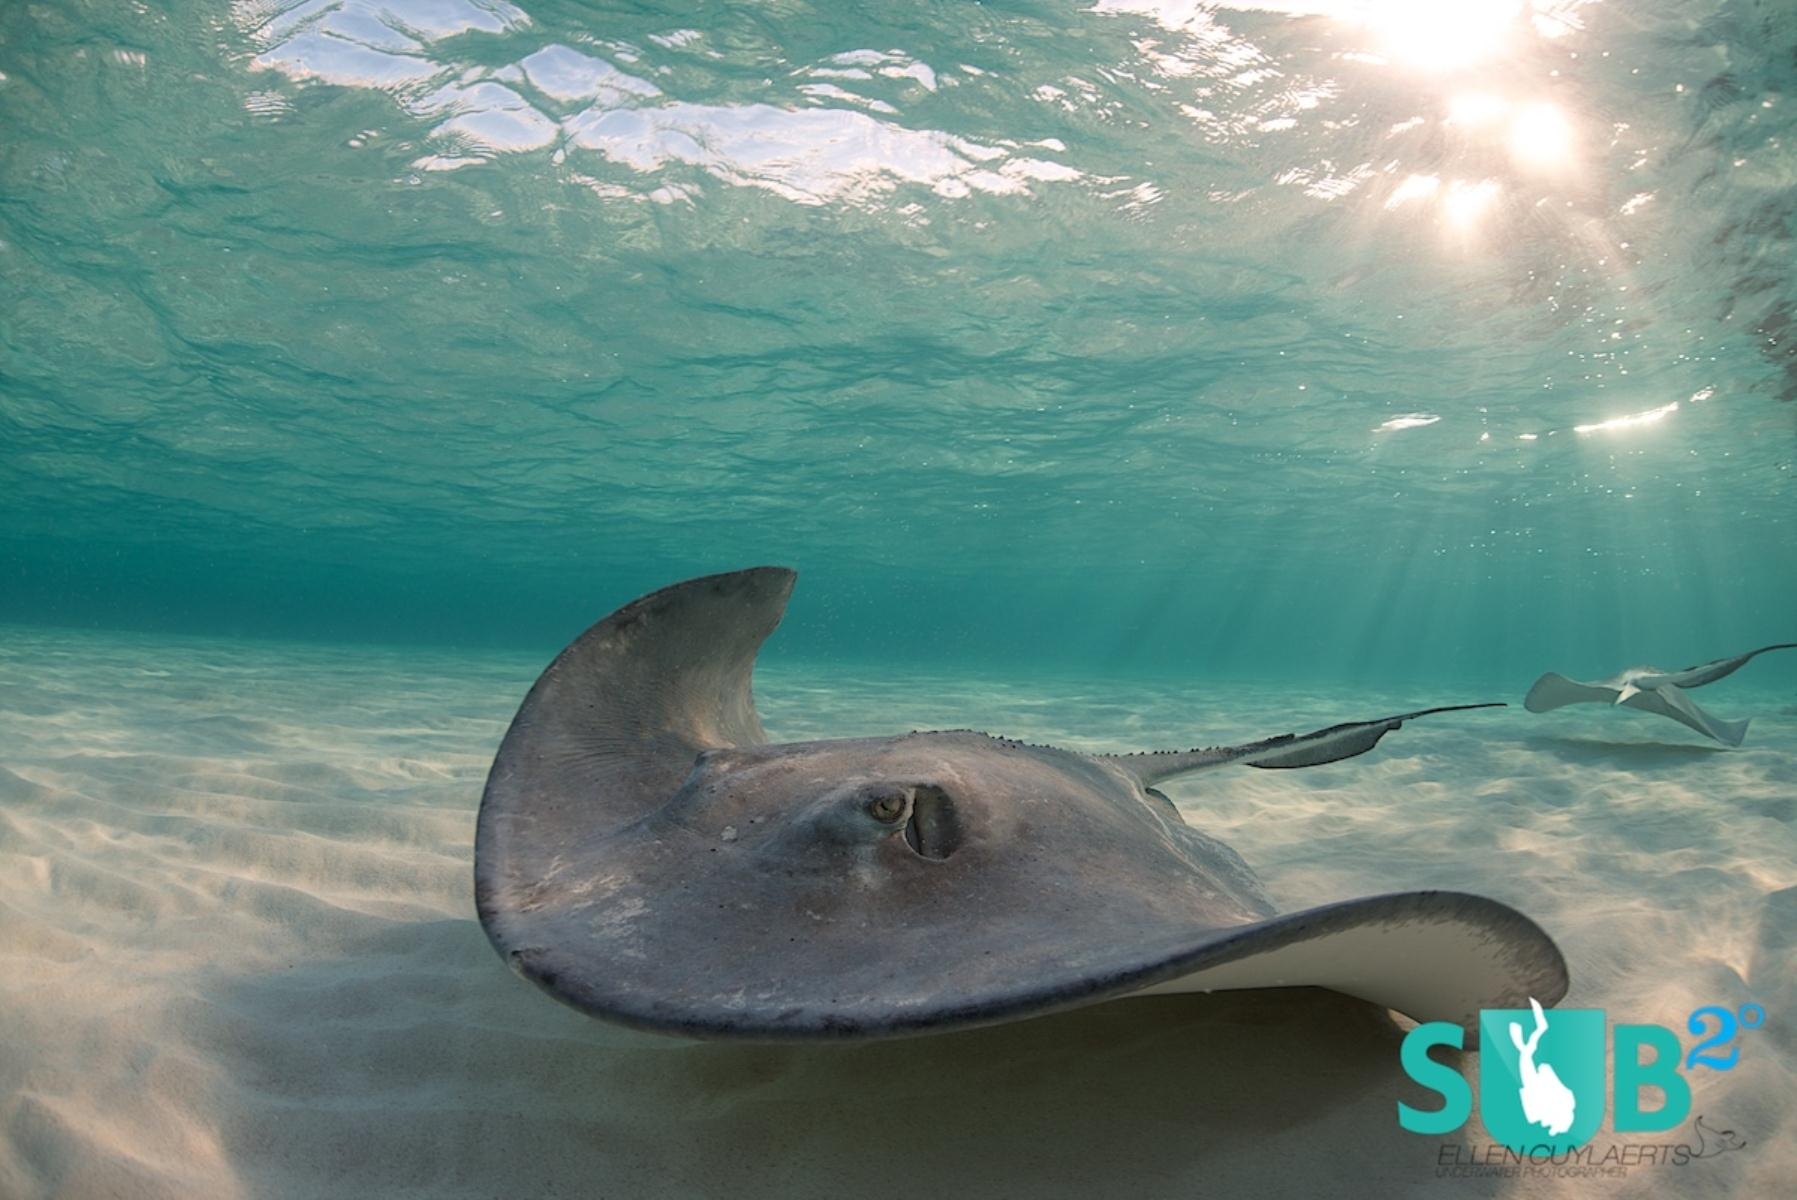 Stingray welcomes us at dawn at the Sandbar